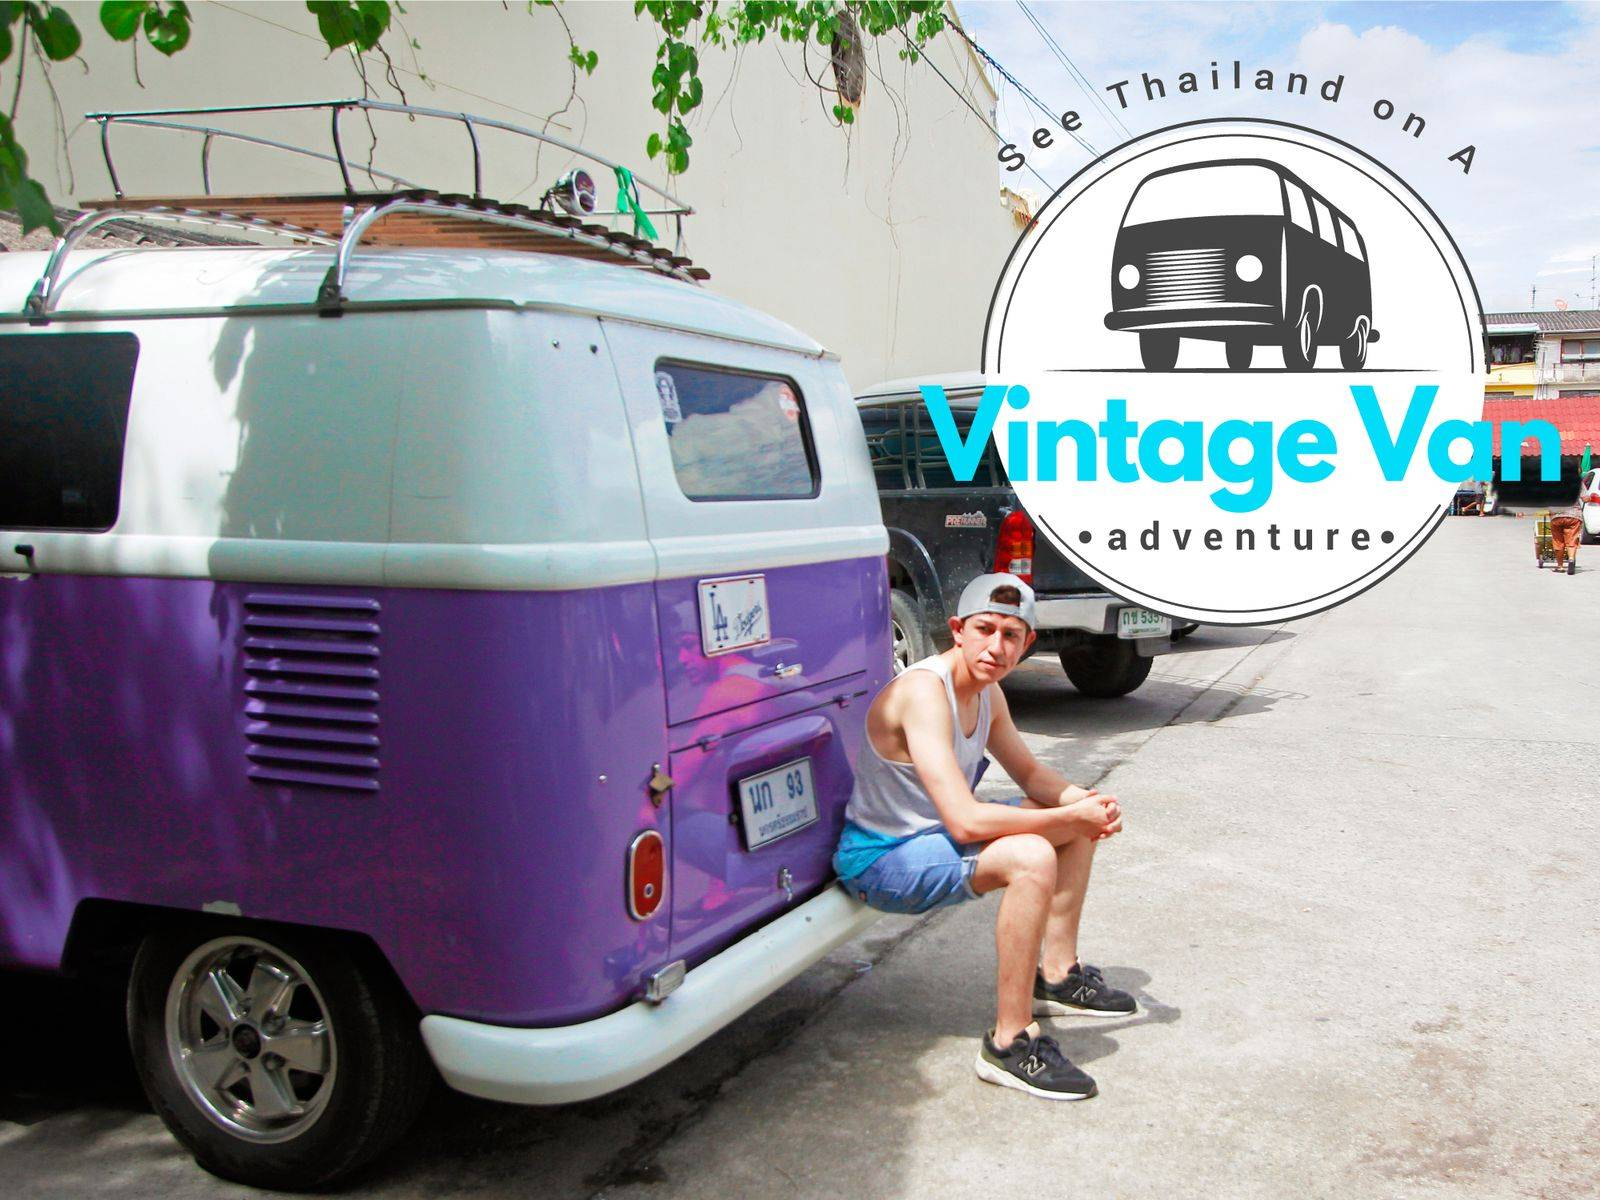 One Day Trip around Suvarnabhumi Airport on A Vintage Volkswagen Van